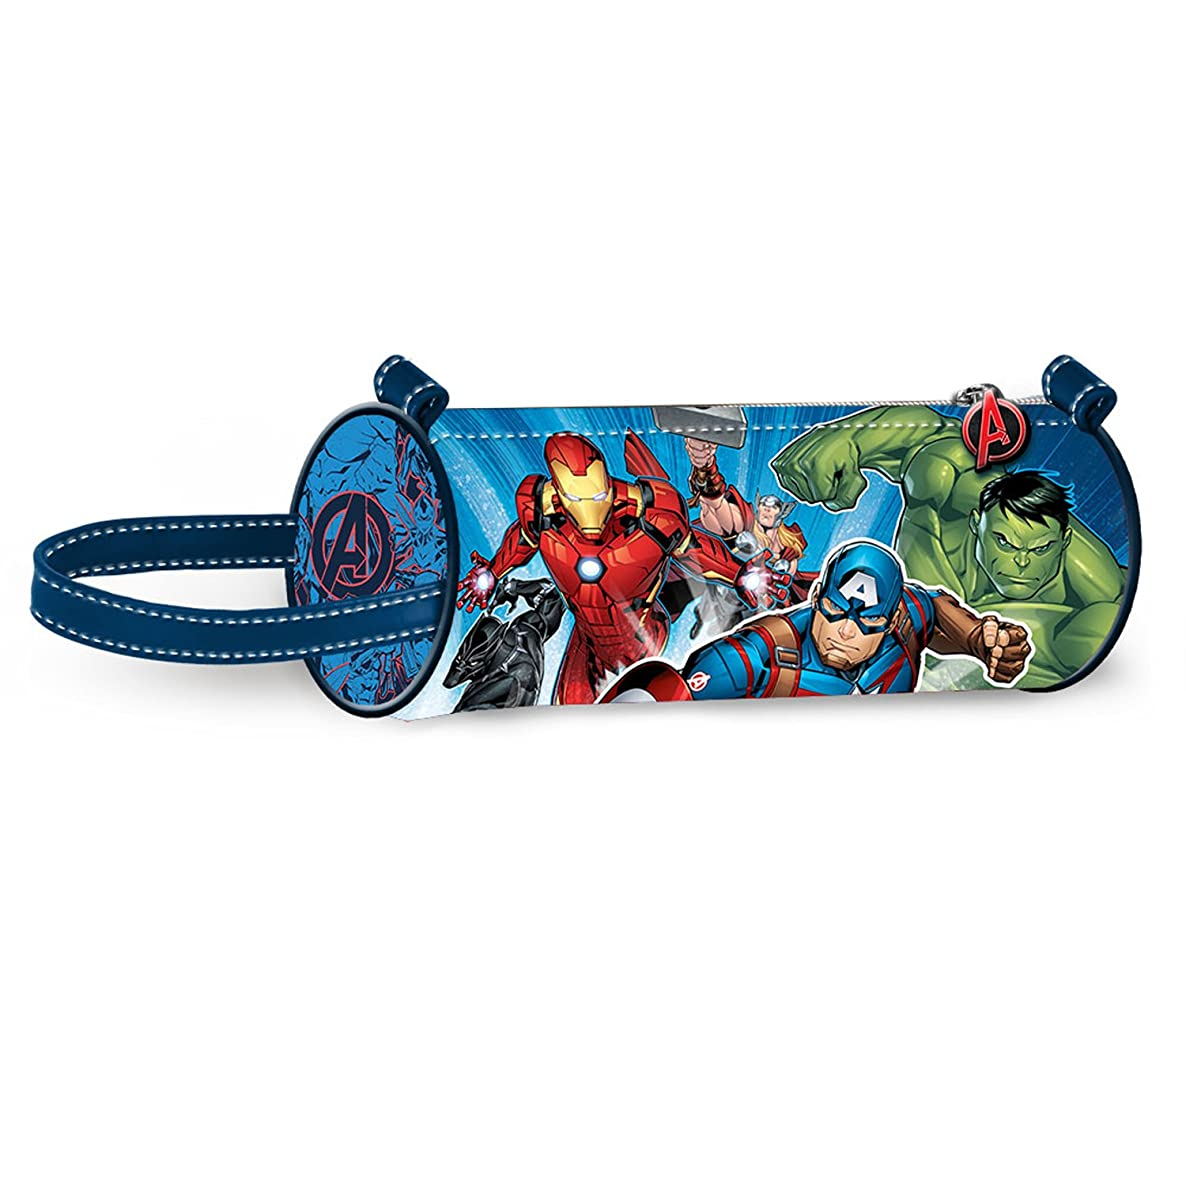 Karactermania The Avengers Powerful-Cylinder Pencil Cases, 22 cm, Blue